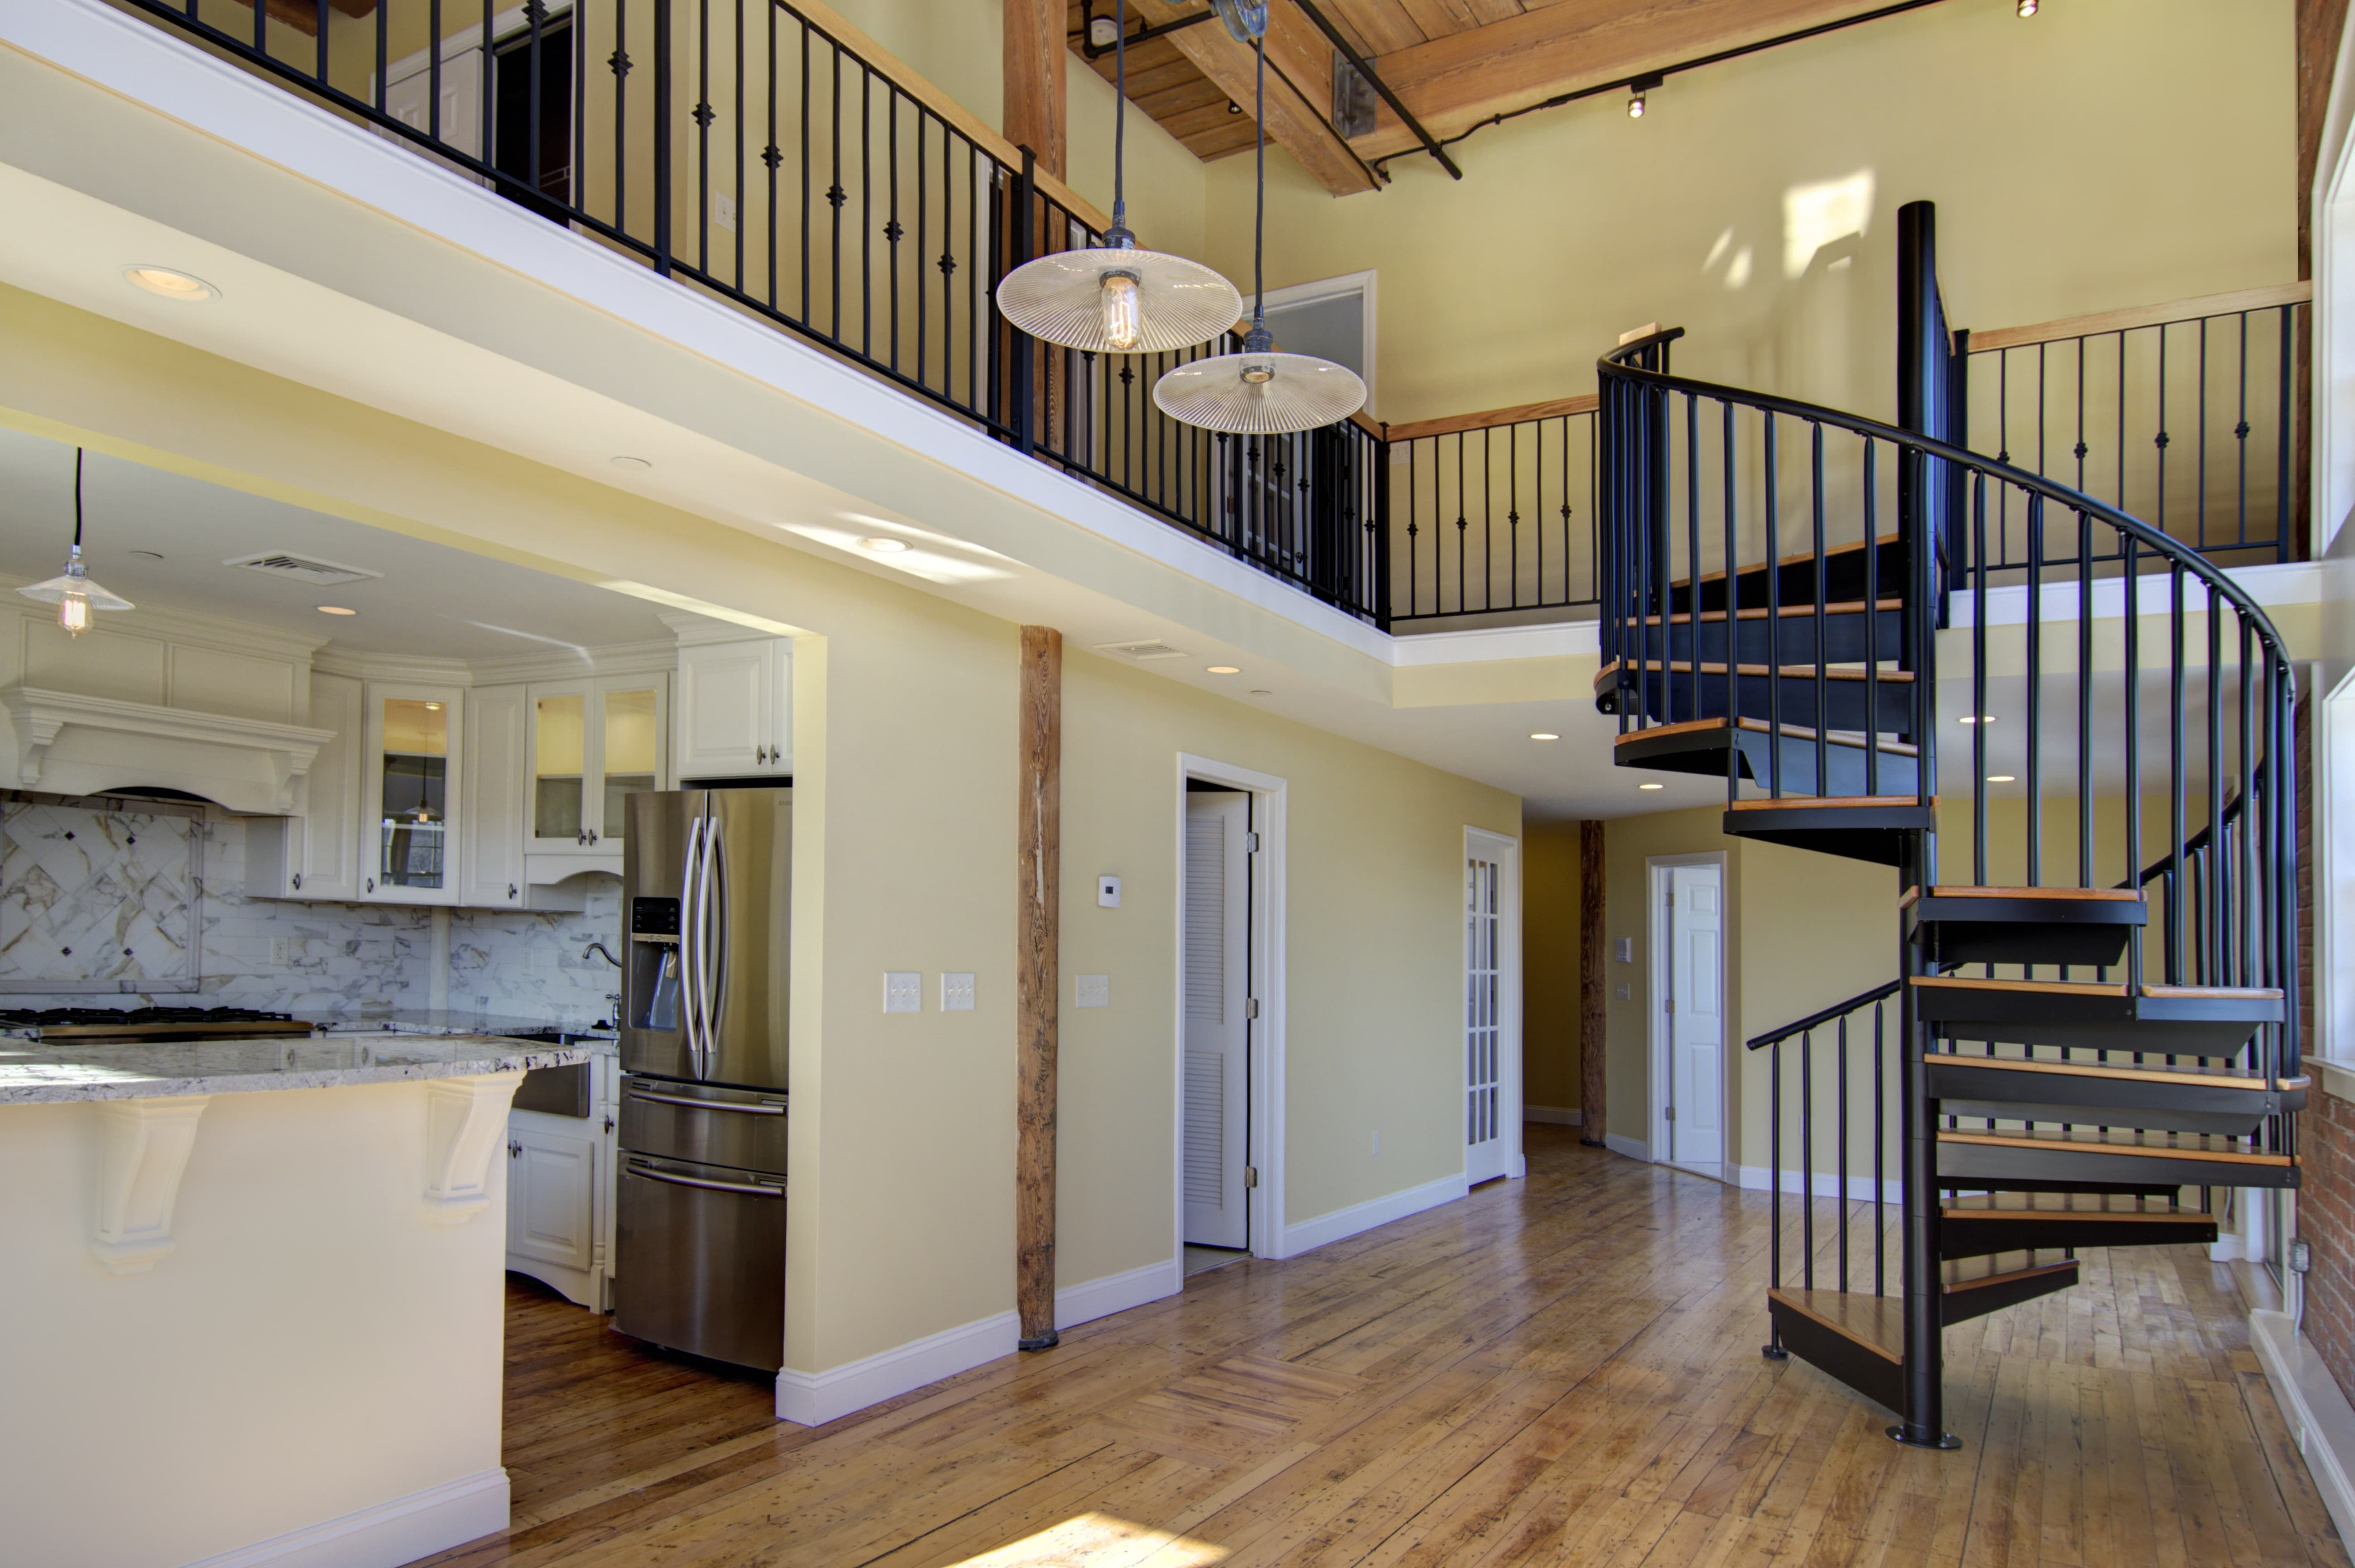 The Complete Loft Conversion Guide Salter Spiral Stair   Loft With Spiral Staircase   Small   Contemporary   Addition   Timber   New